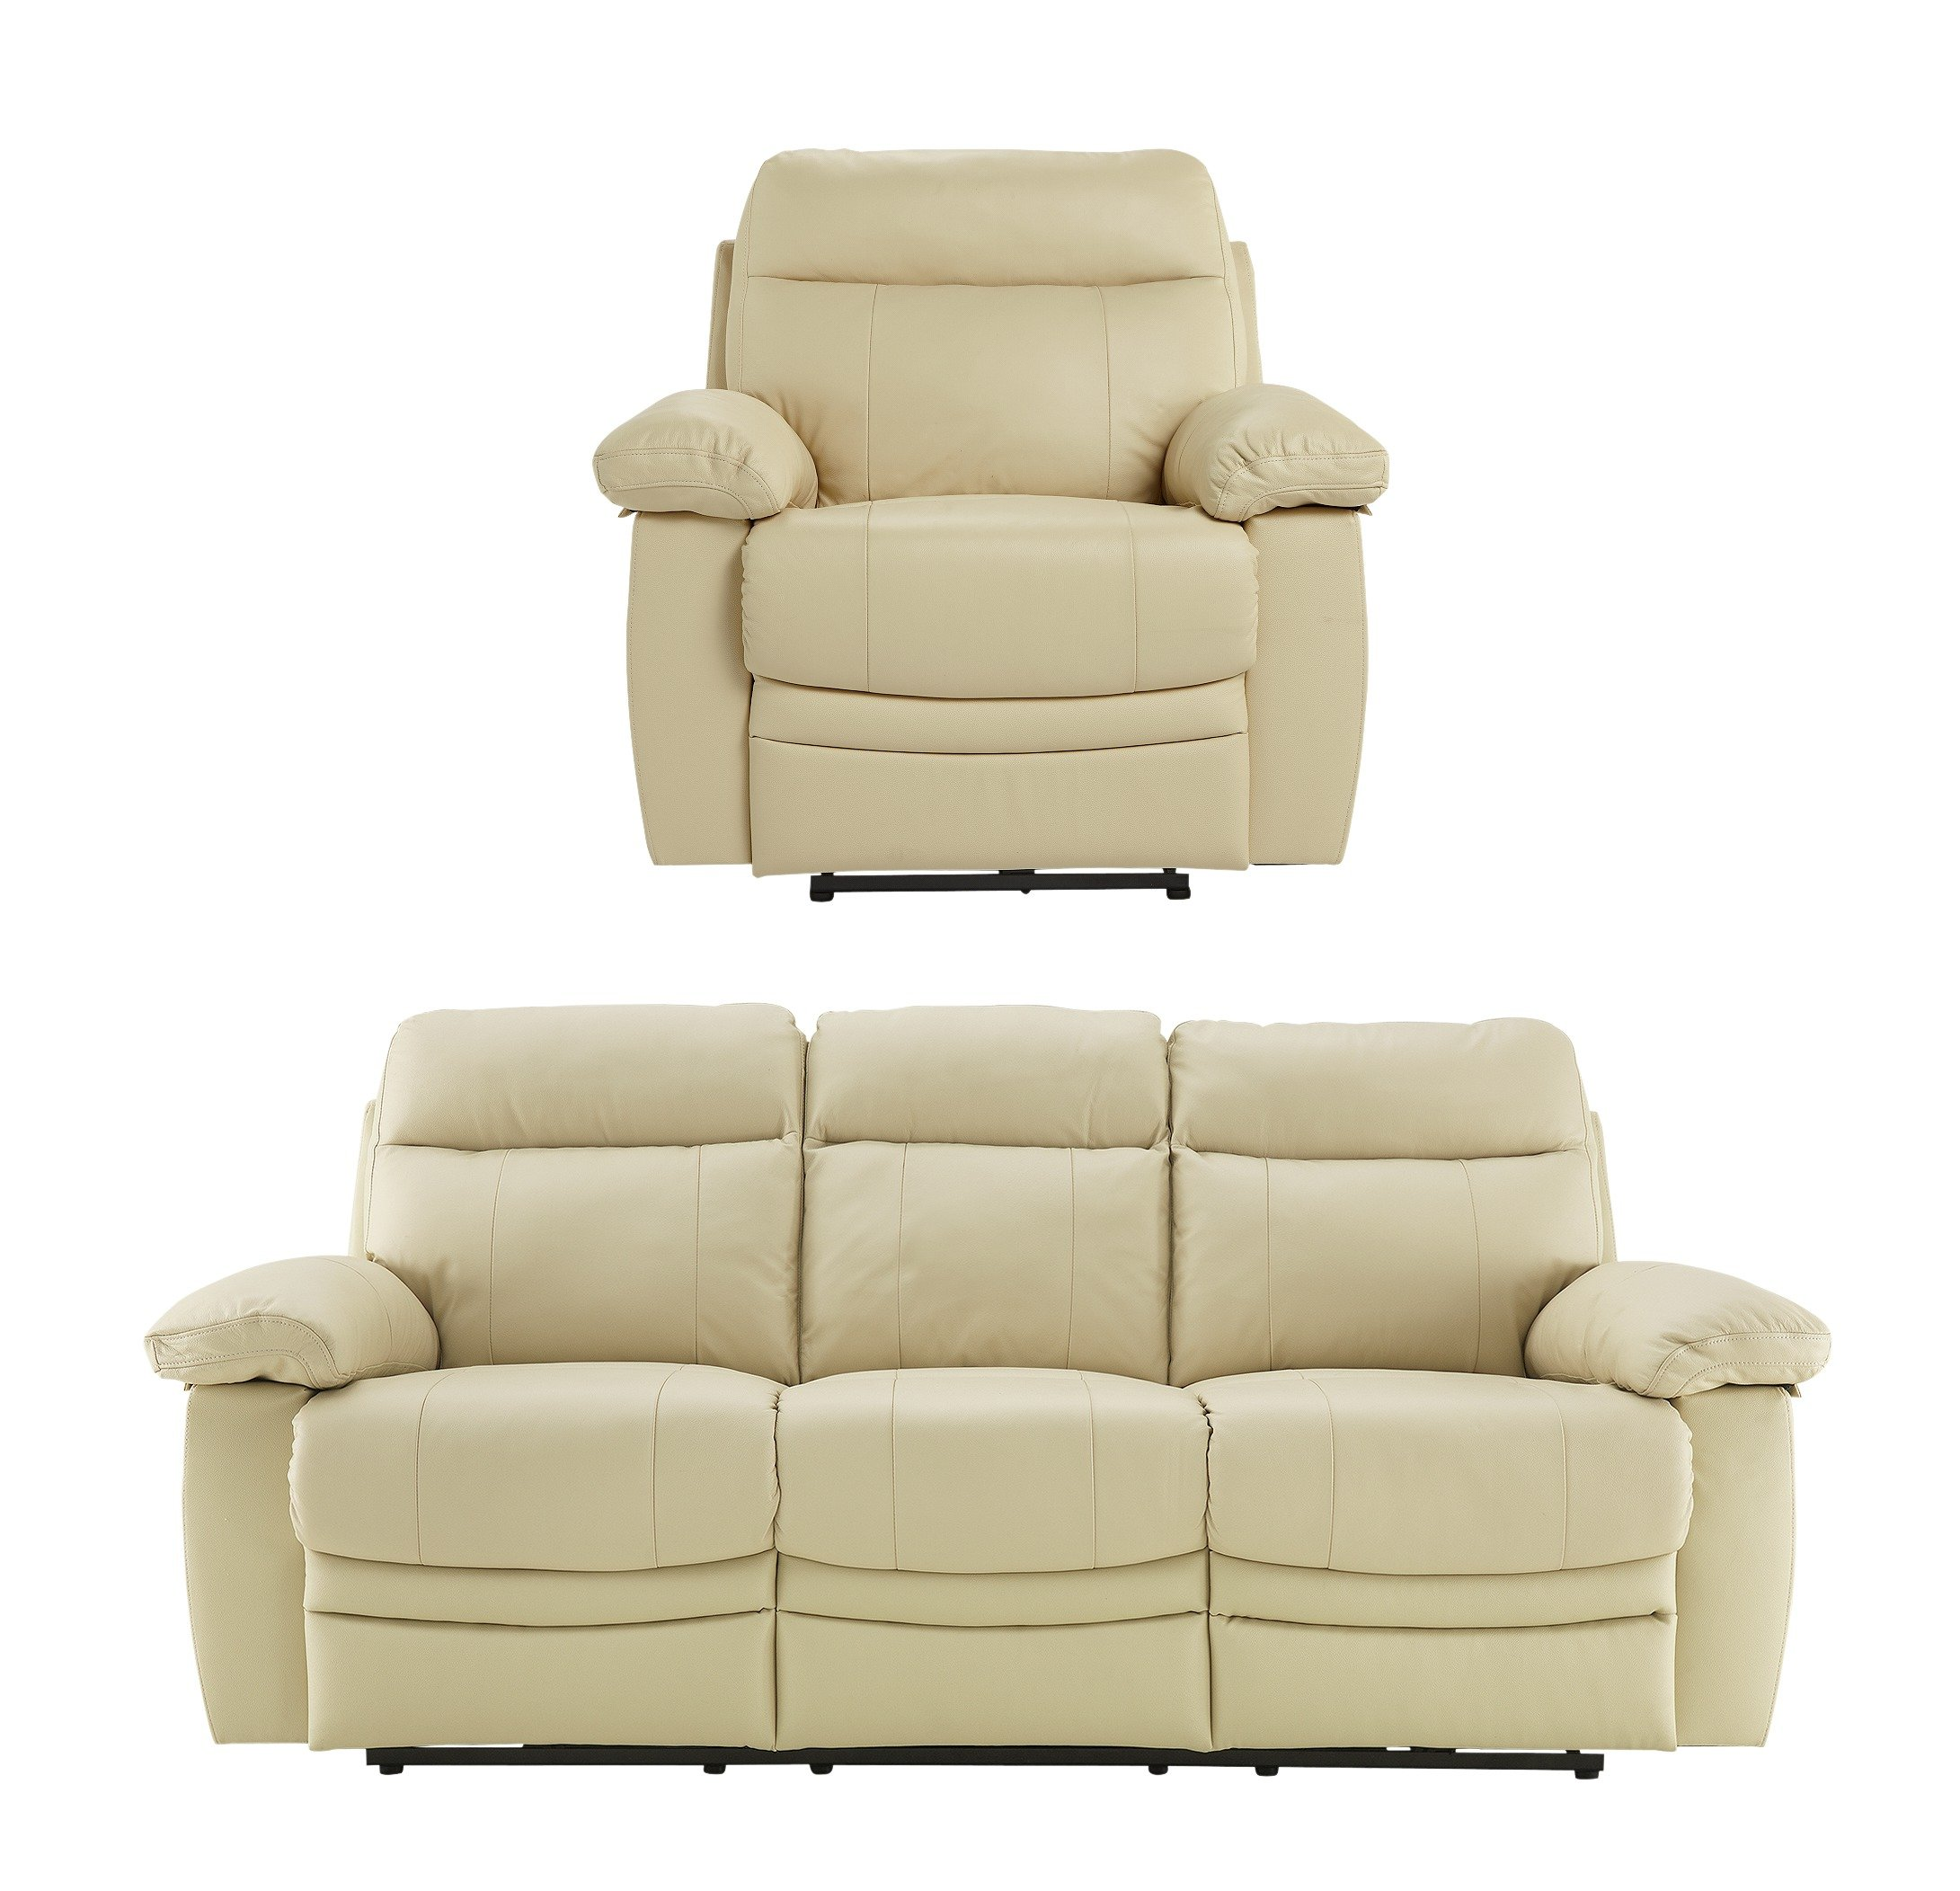 leather recliner sofas argos sofa covers online paulo large and chair ivory